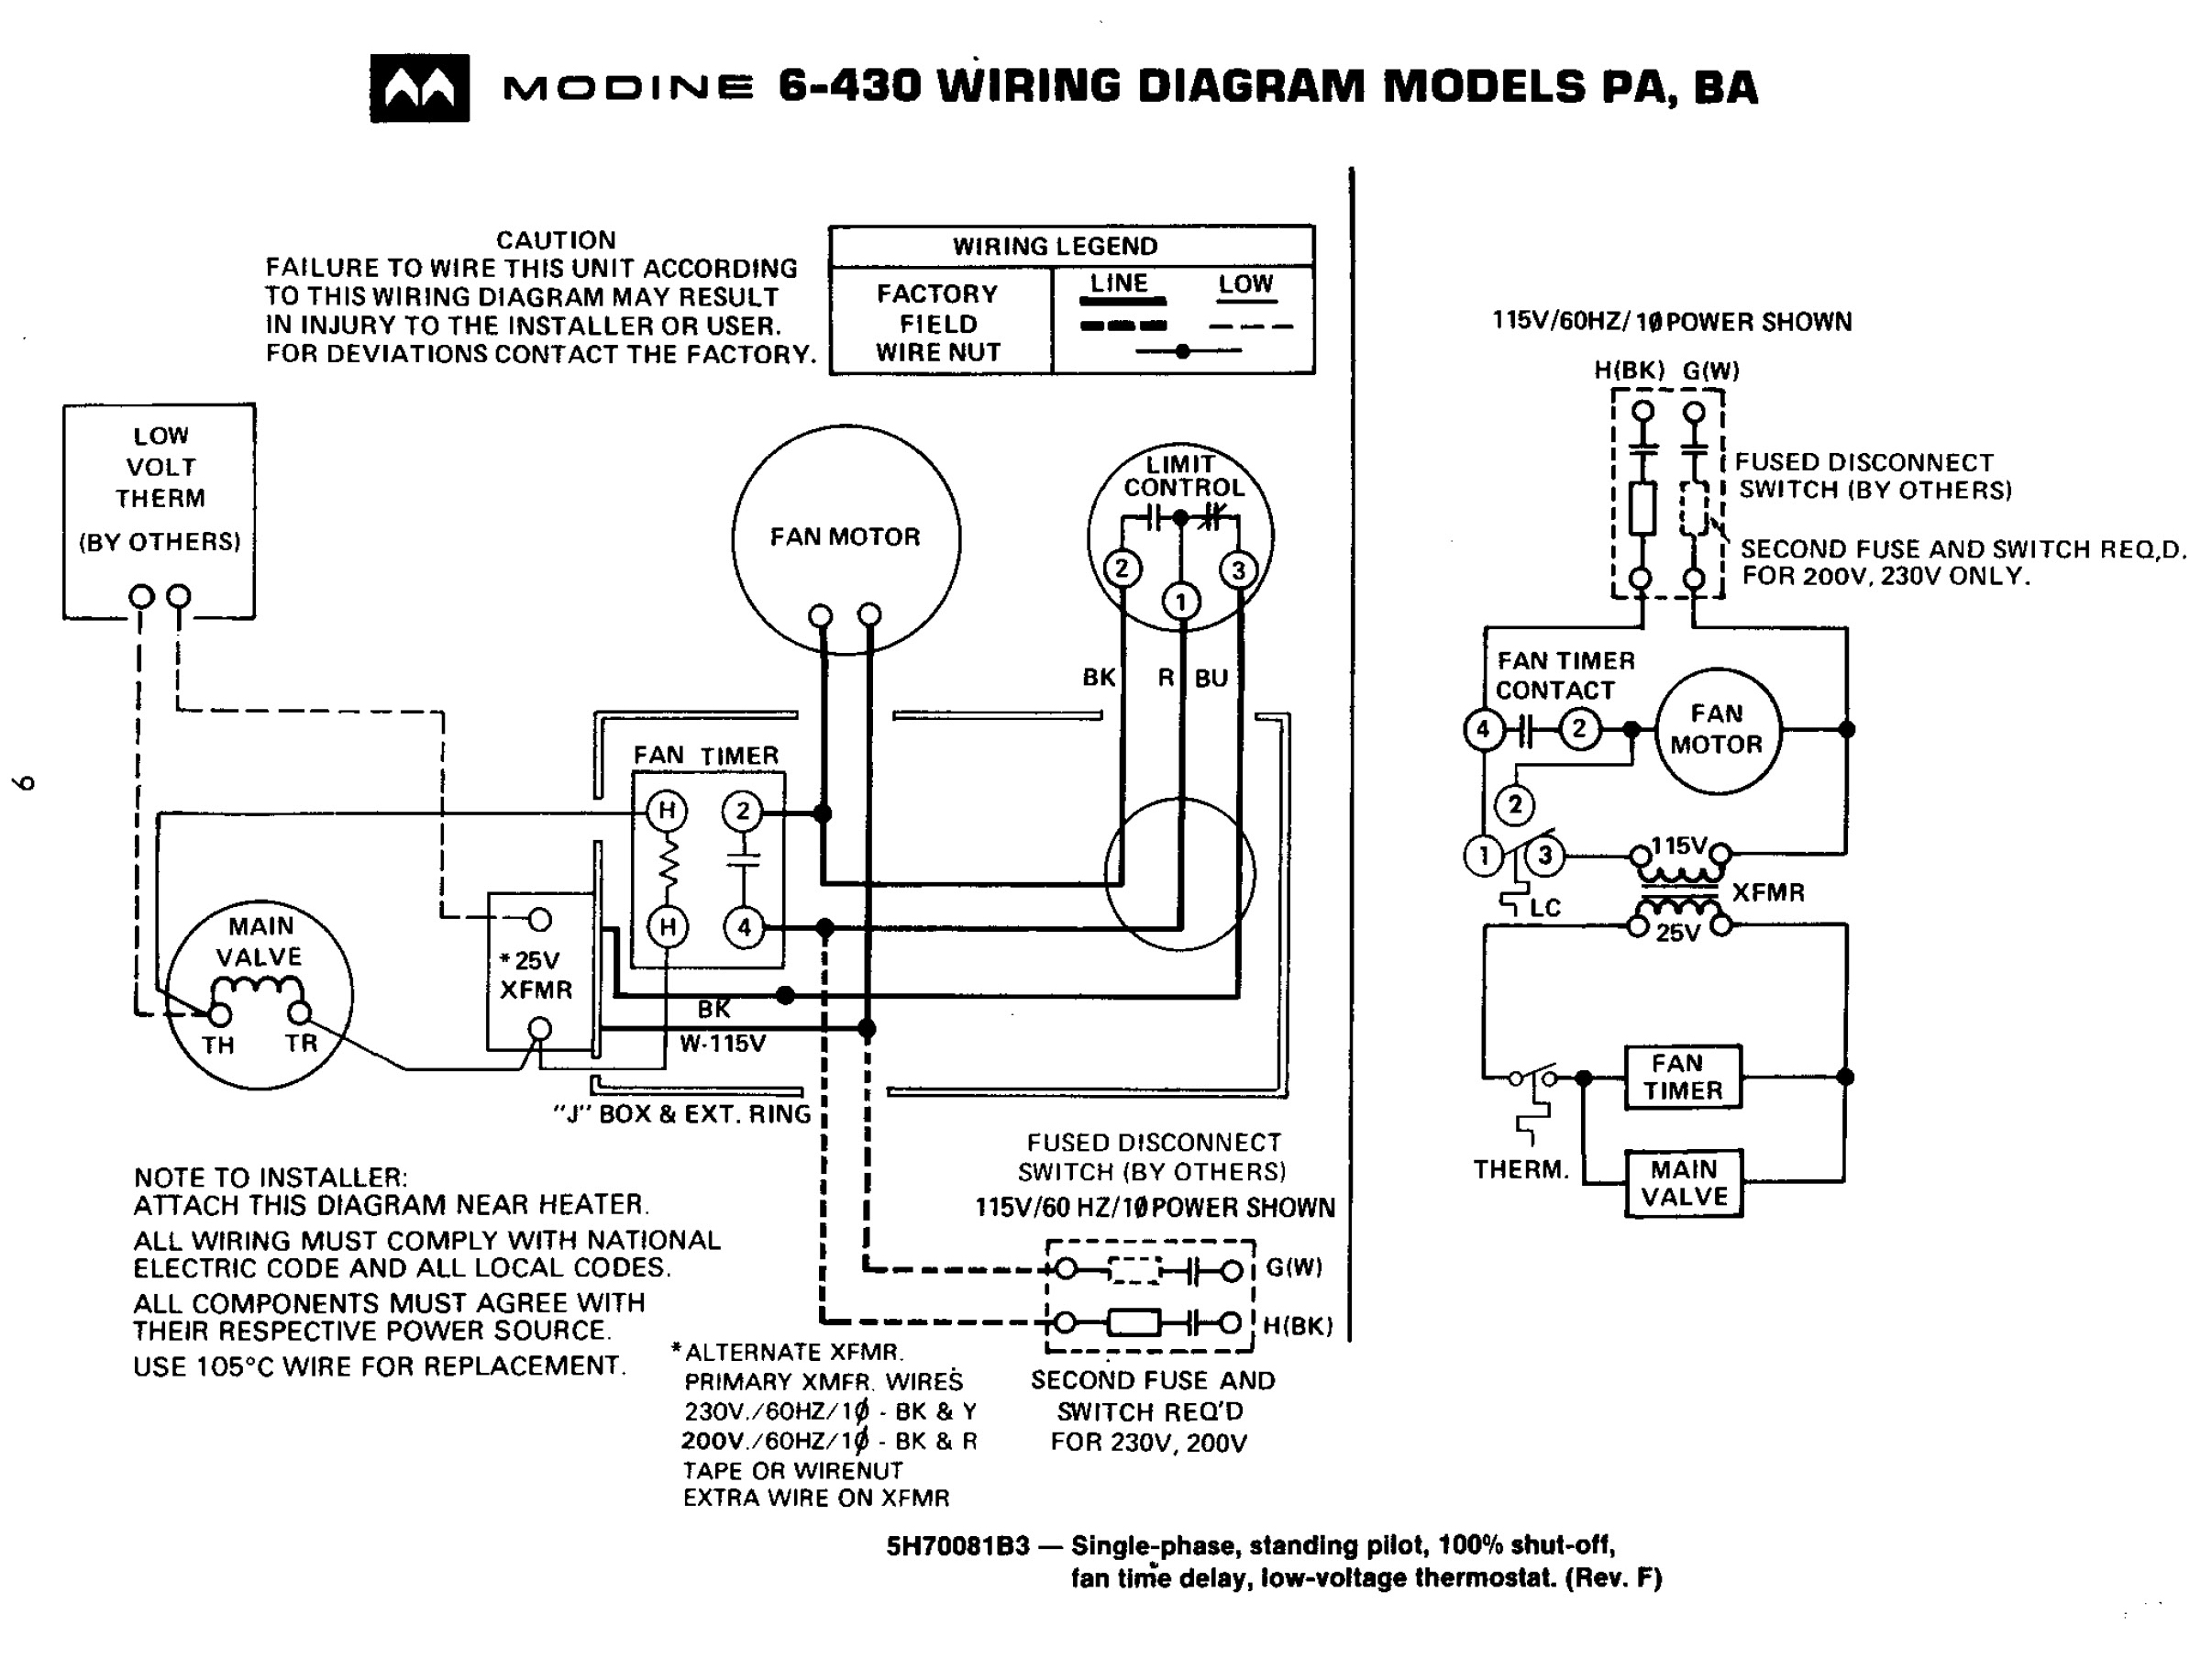 modine pd 50 wiring diagram - wiring diagram red and white water heater wiring diagram